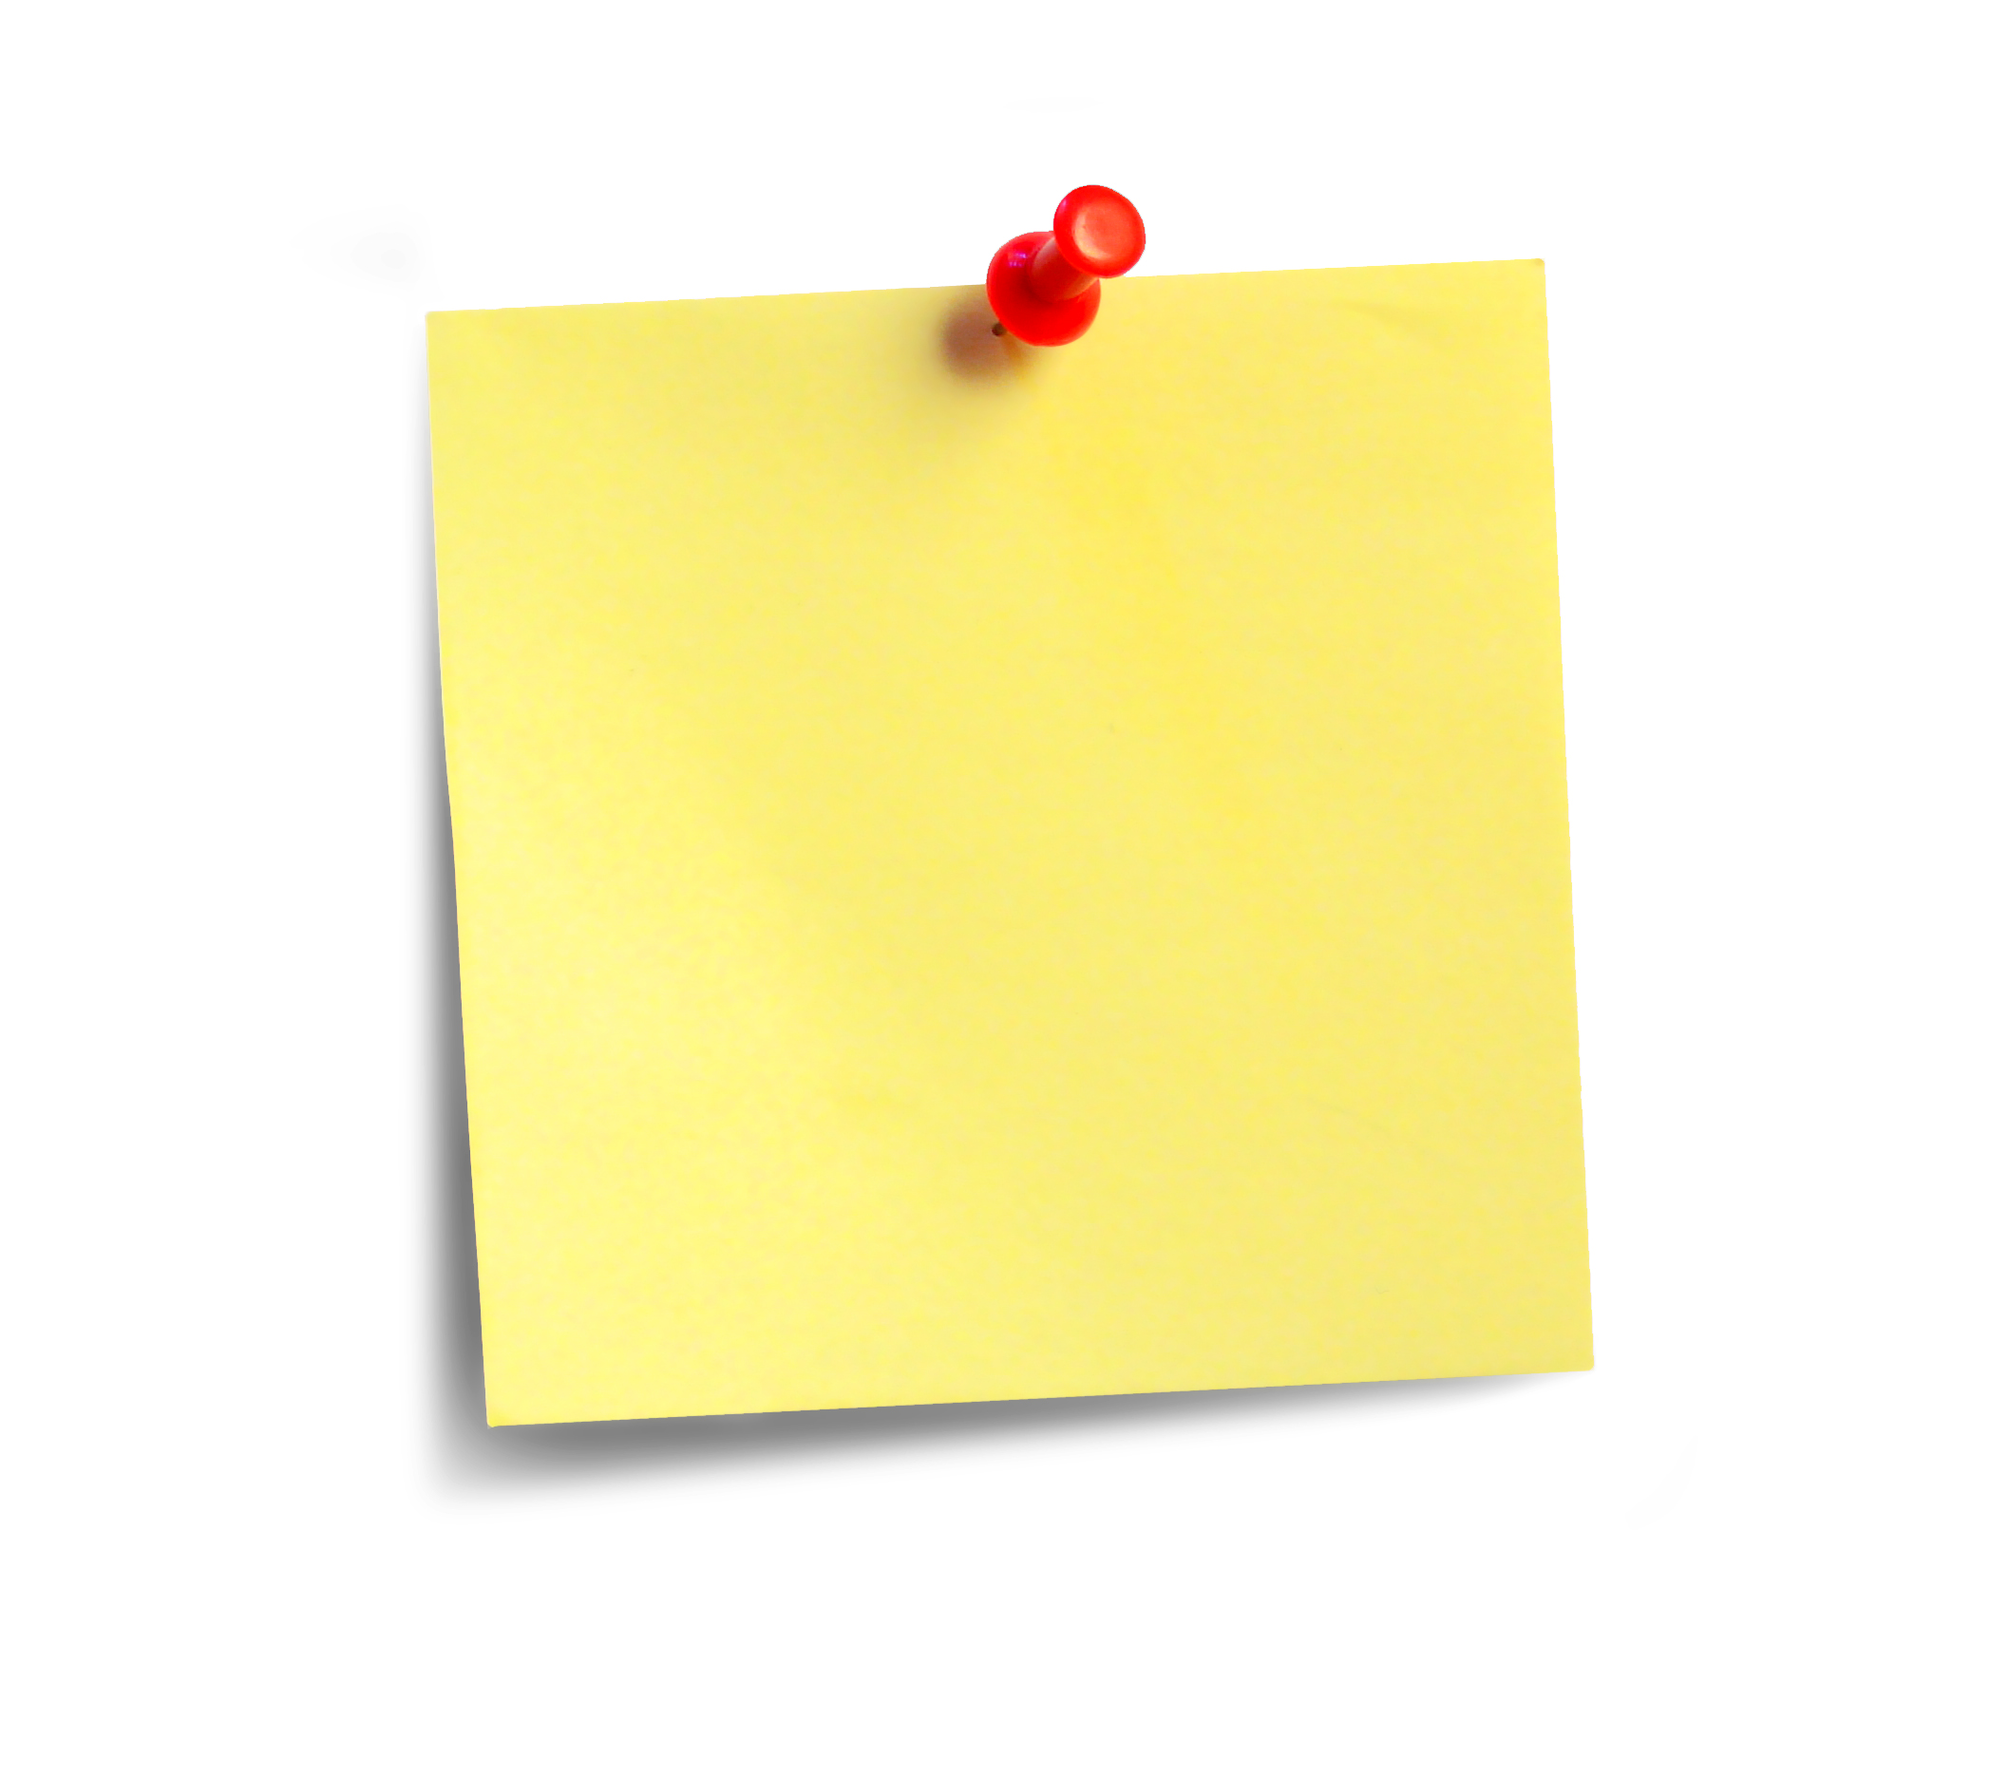 Sticky Notes Png Clipart - Free to use Clip Art Resource